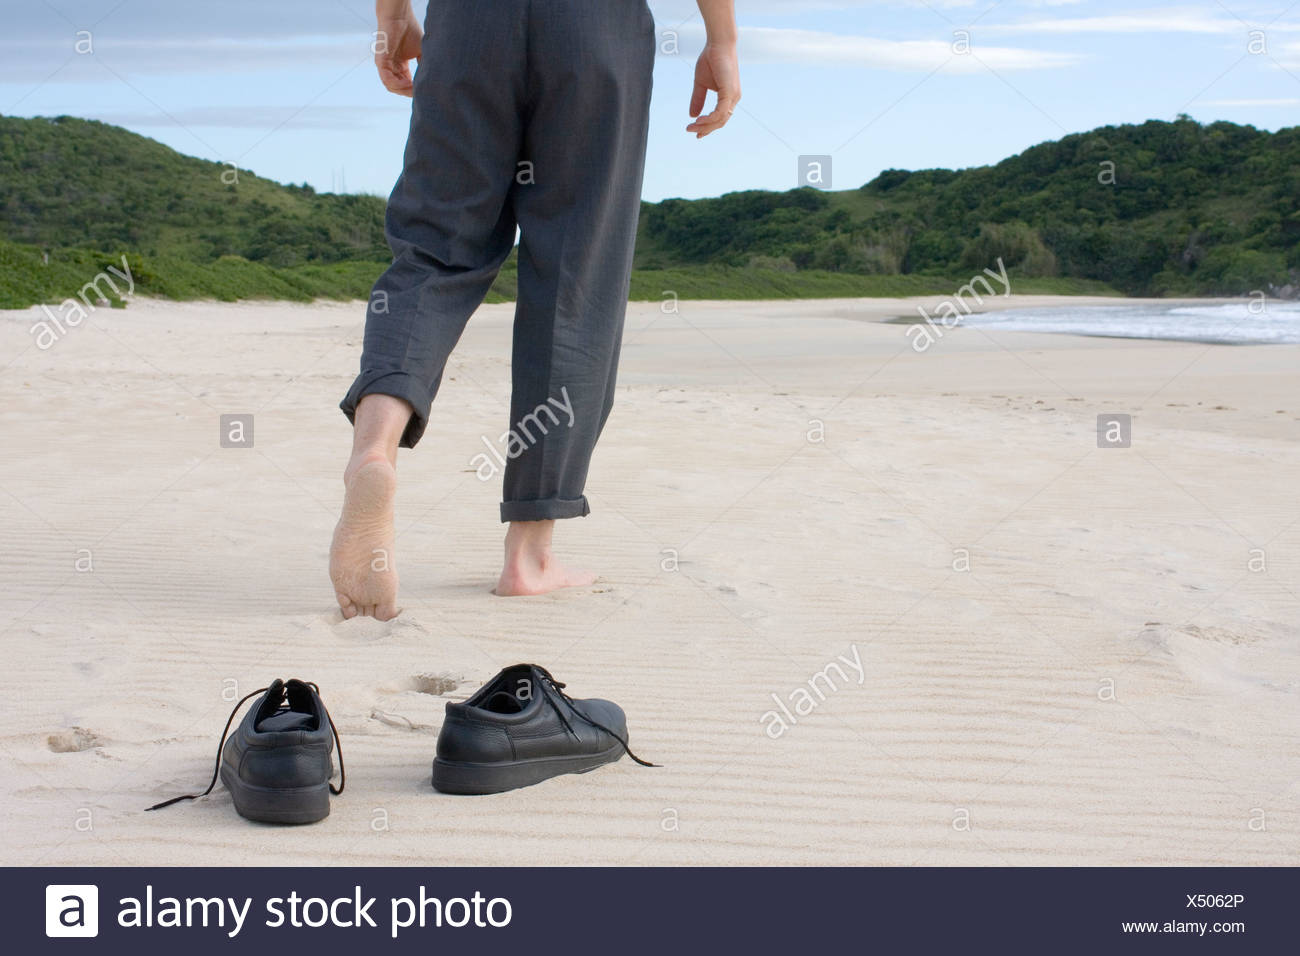 259ebc567 Businessman walking barefoot on a empty beach. Focus on his shoes in the  foreground